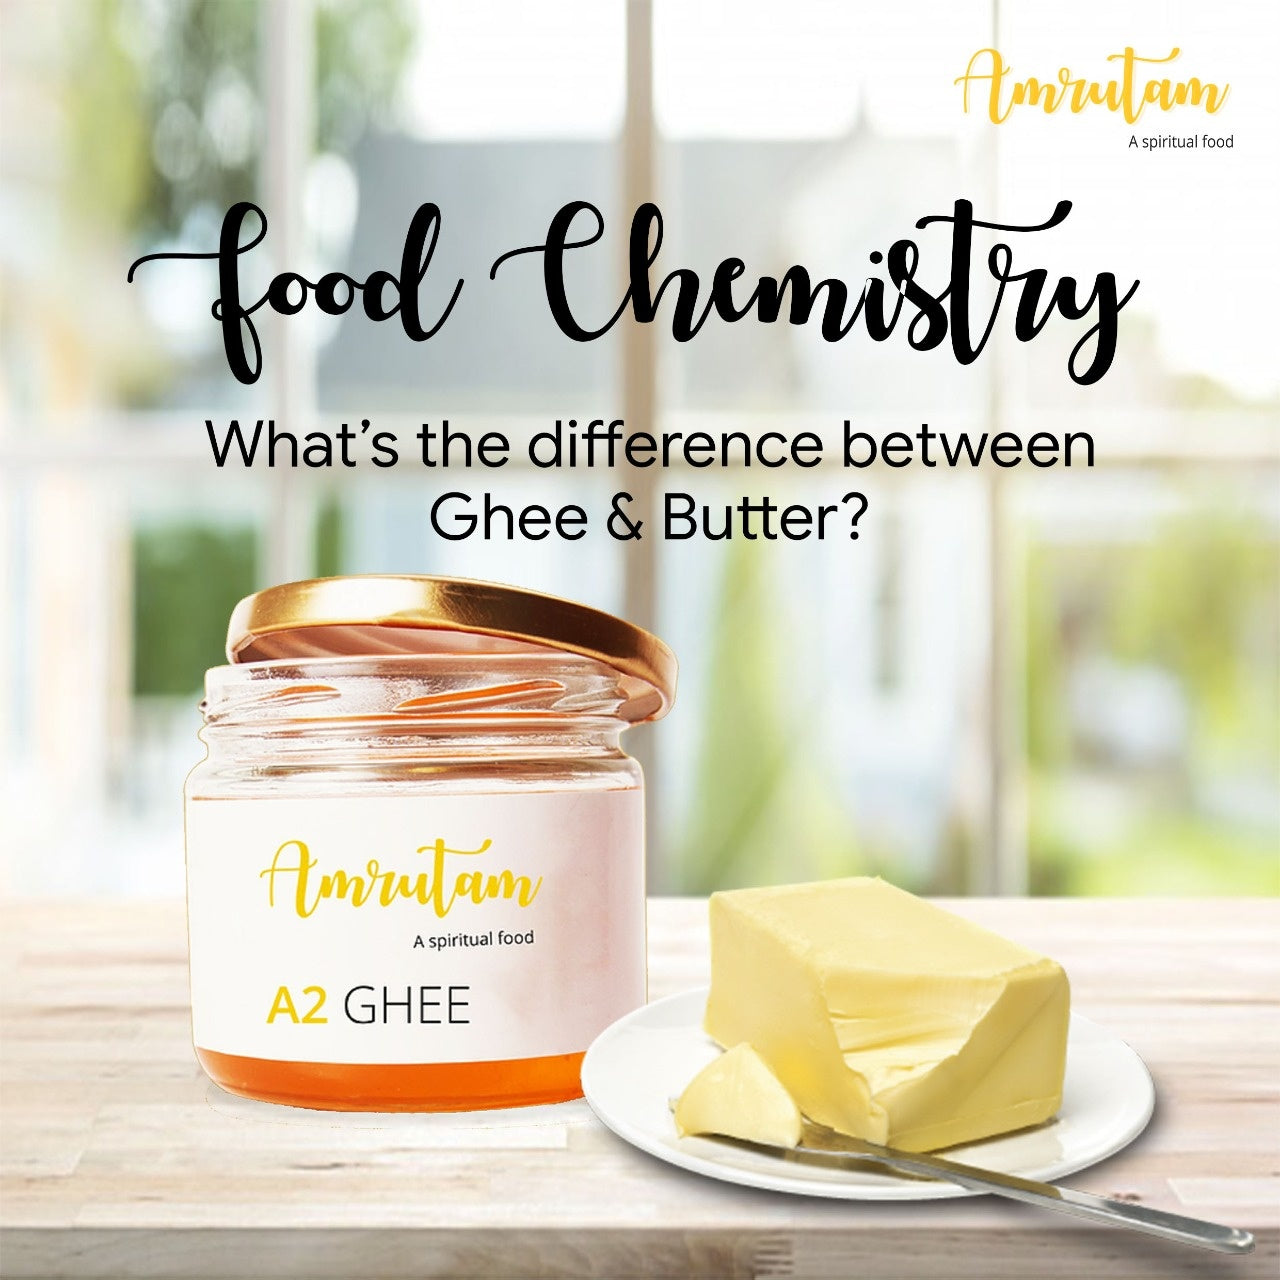 Food Chemistry: What's the difference between ghee and butter?